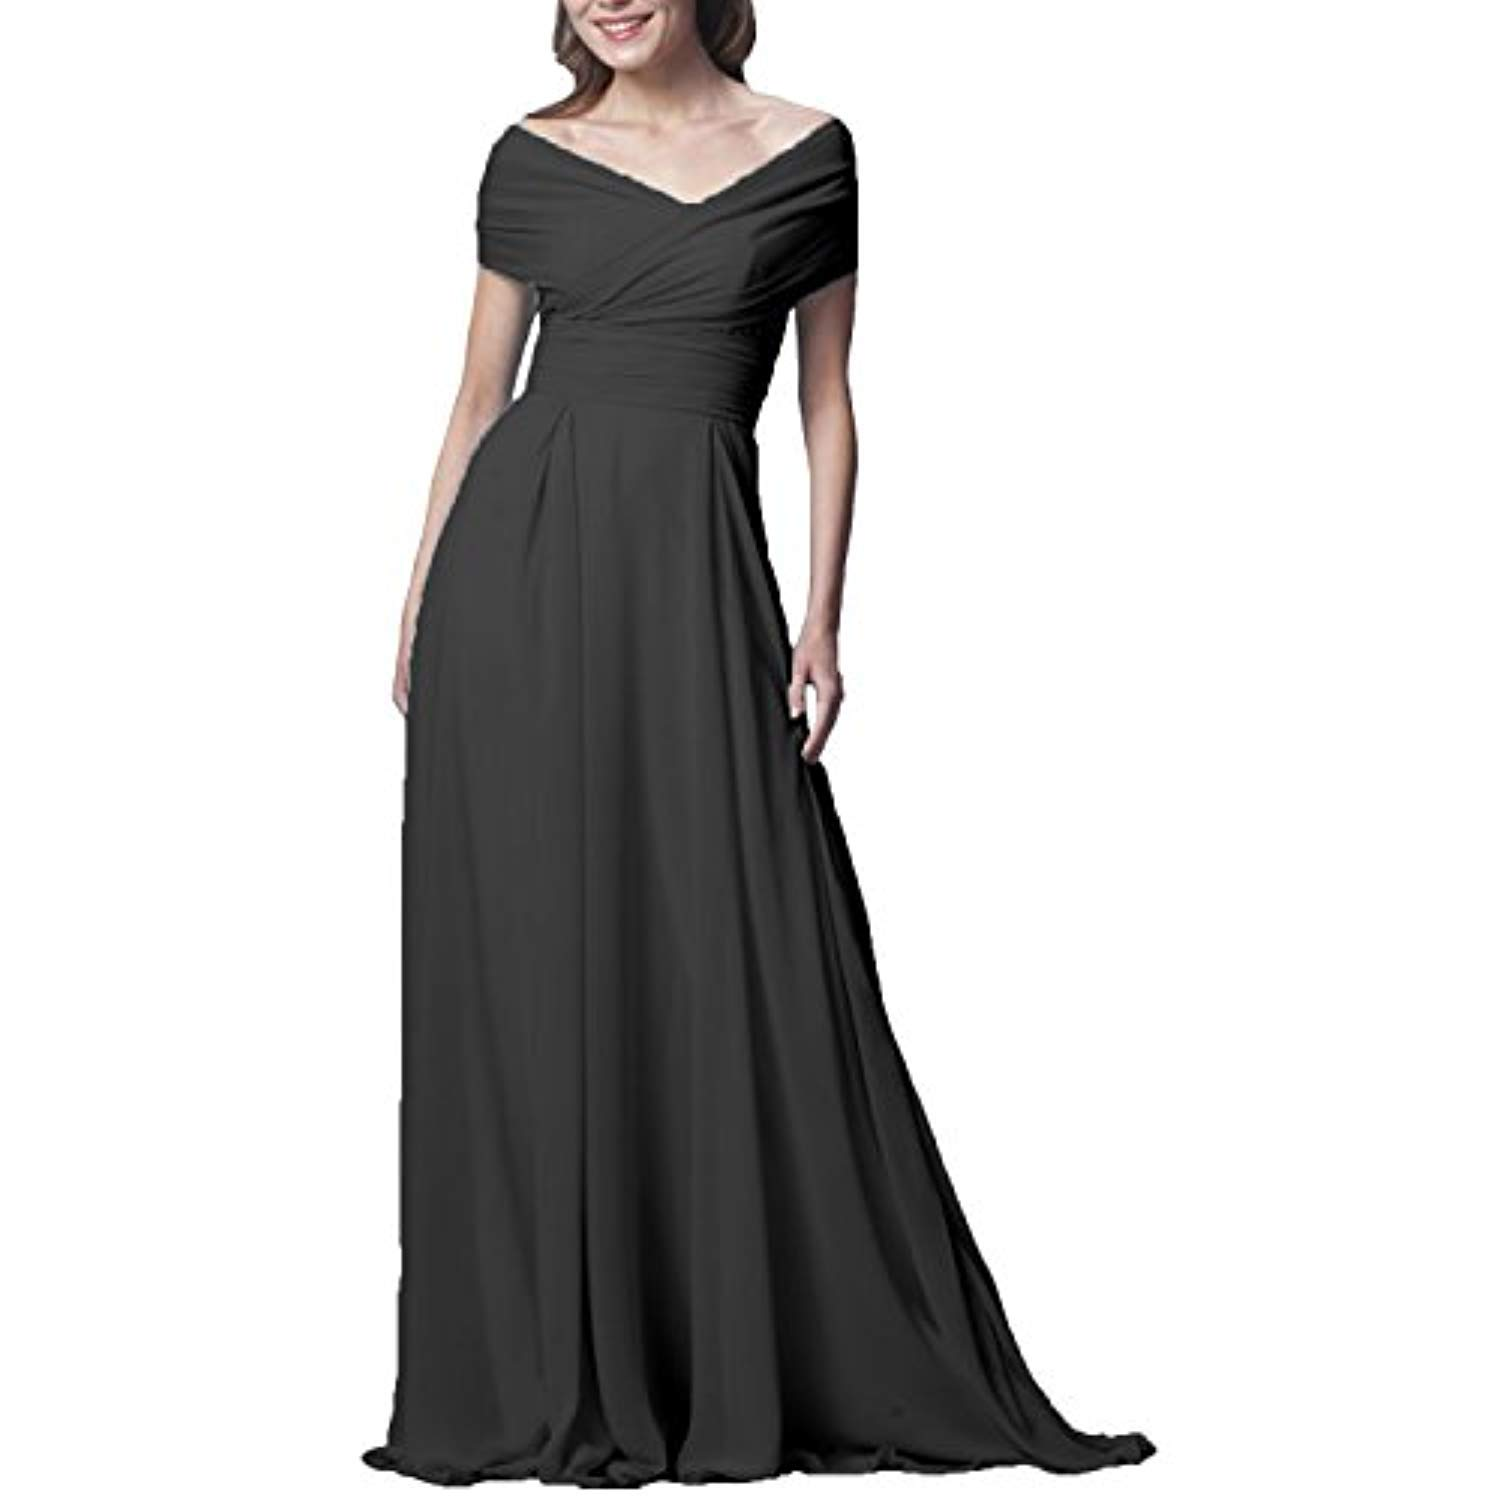 M Bridal Womens Maxi Infinity Transformer Bridesmaid Dresses Multiway Wrap Formal Party Gown Long